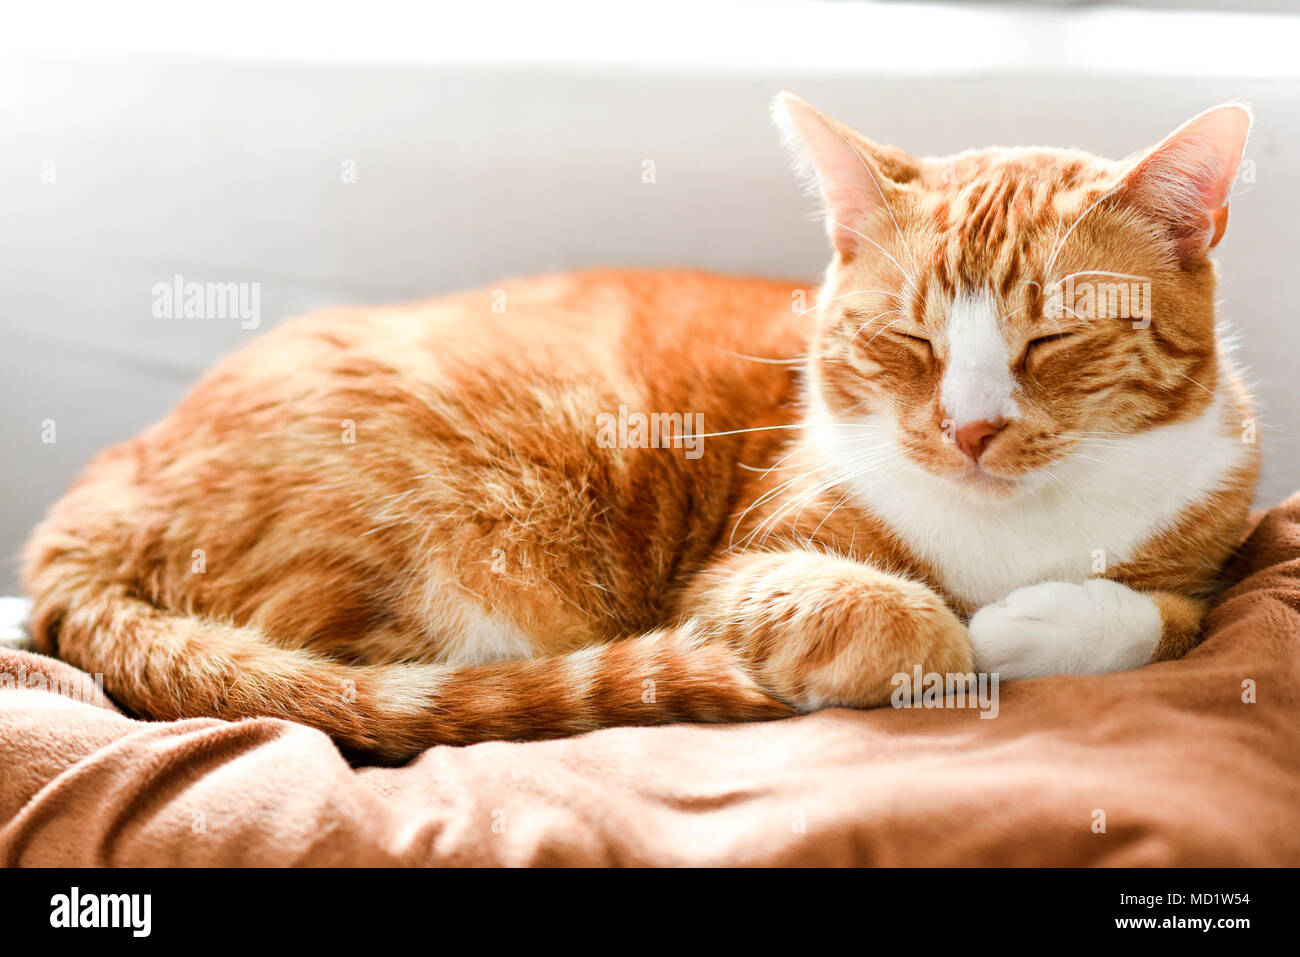 Ginger cat sleeping on the couch at home, a beautiful house cat. - Stock Image